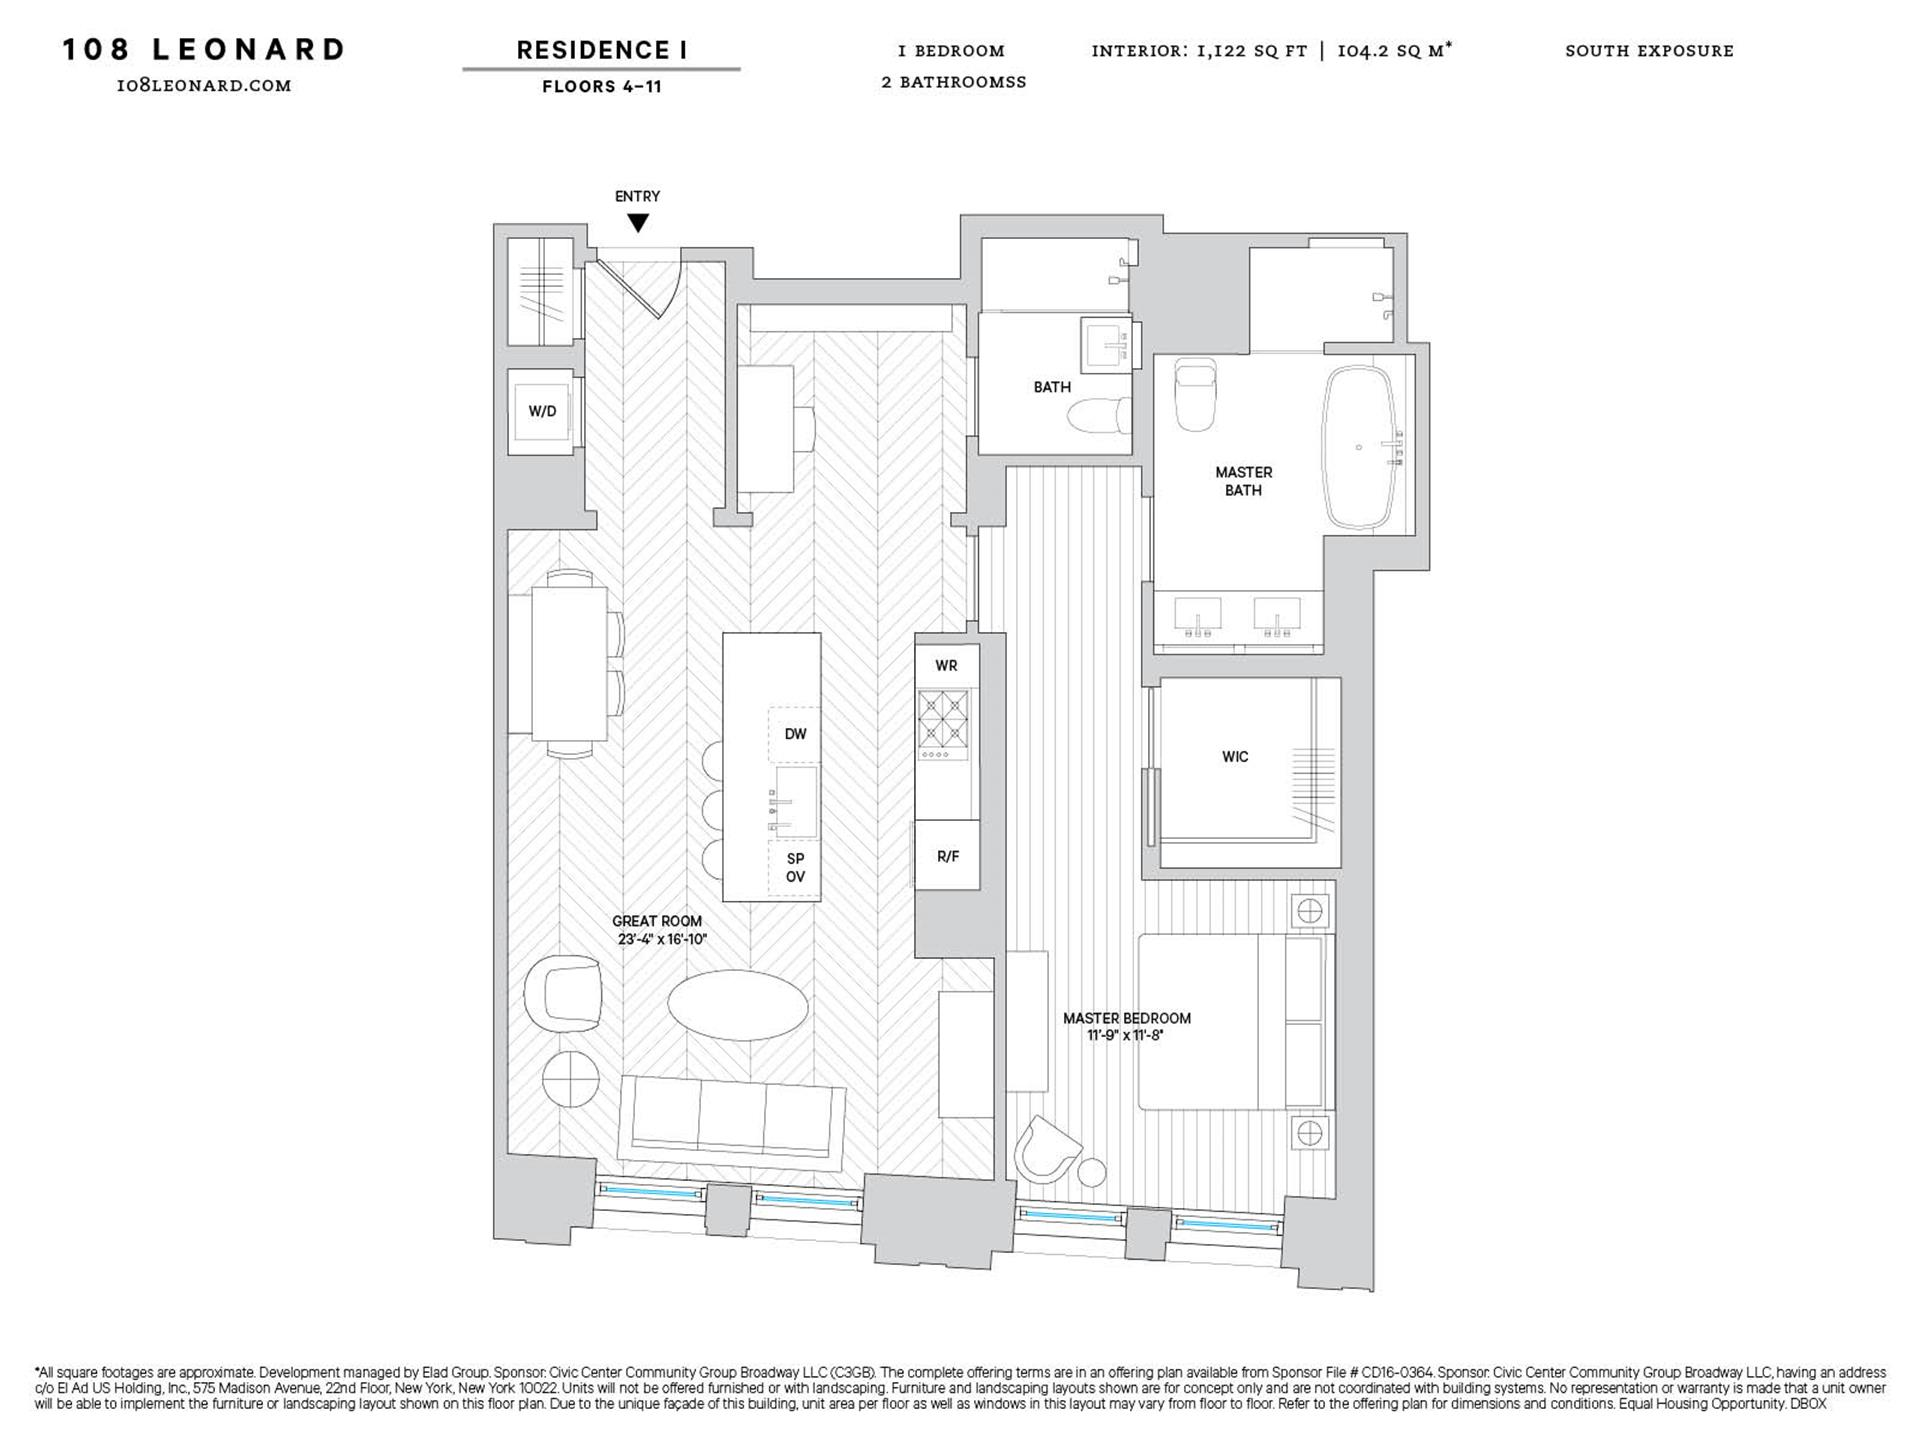 Floor plan of 108 Leonard St, 10I - TriBeCa, New York